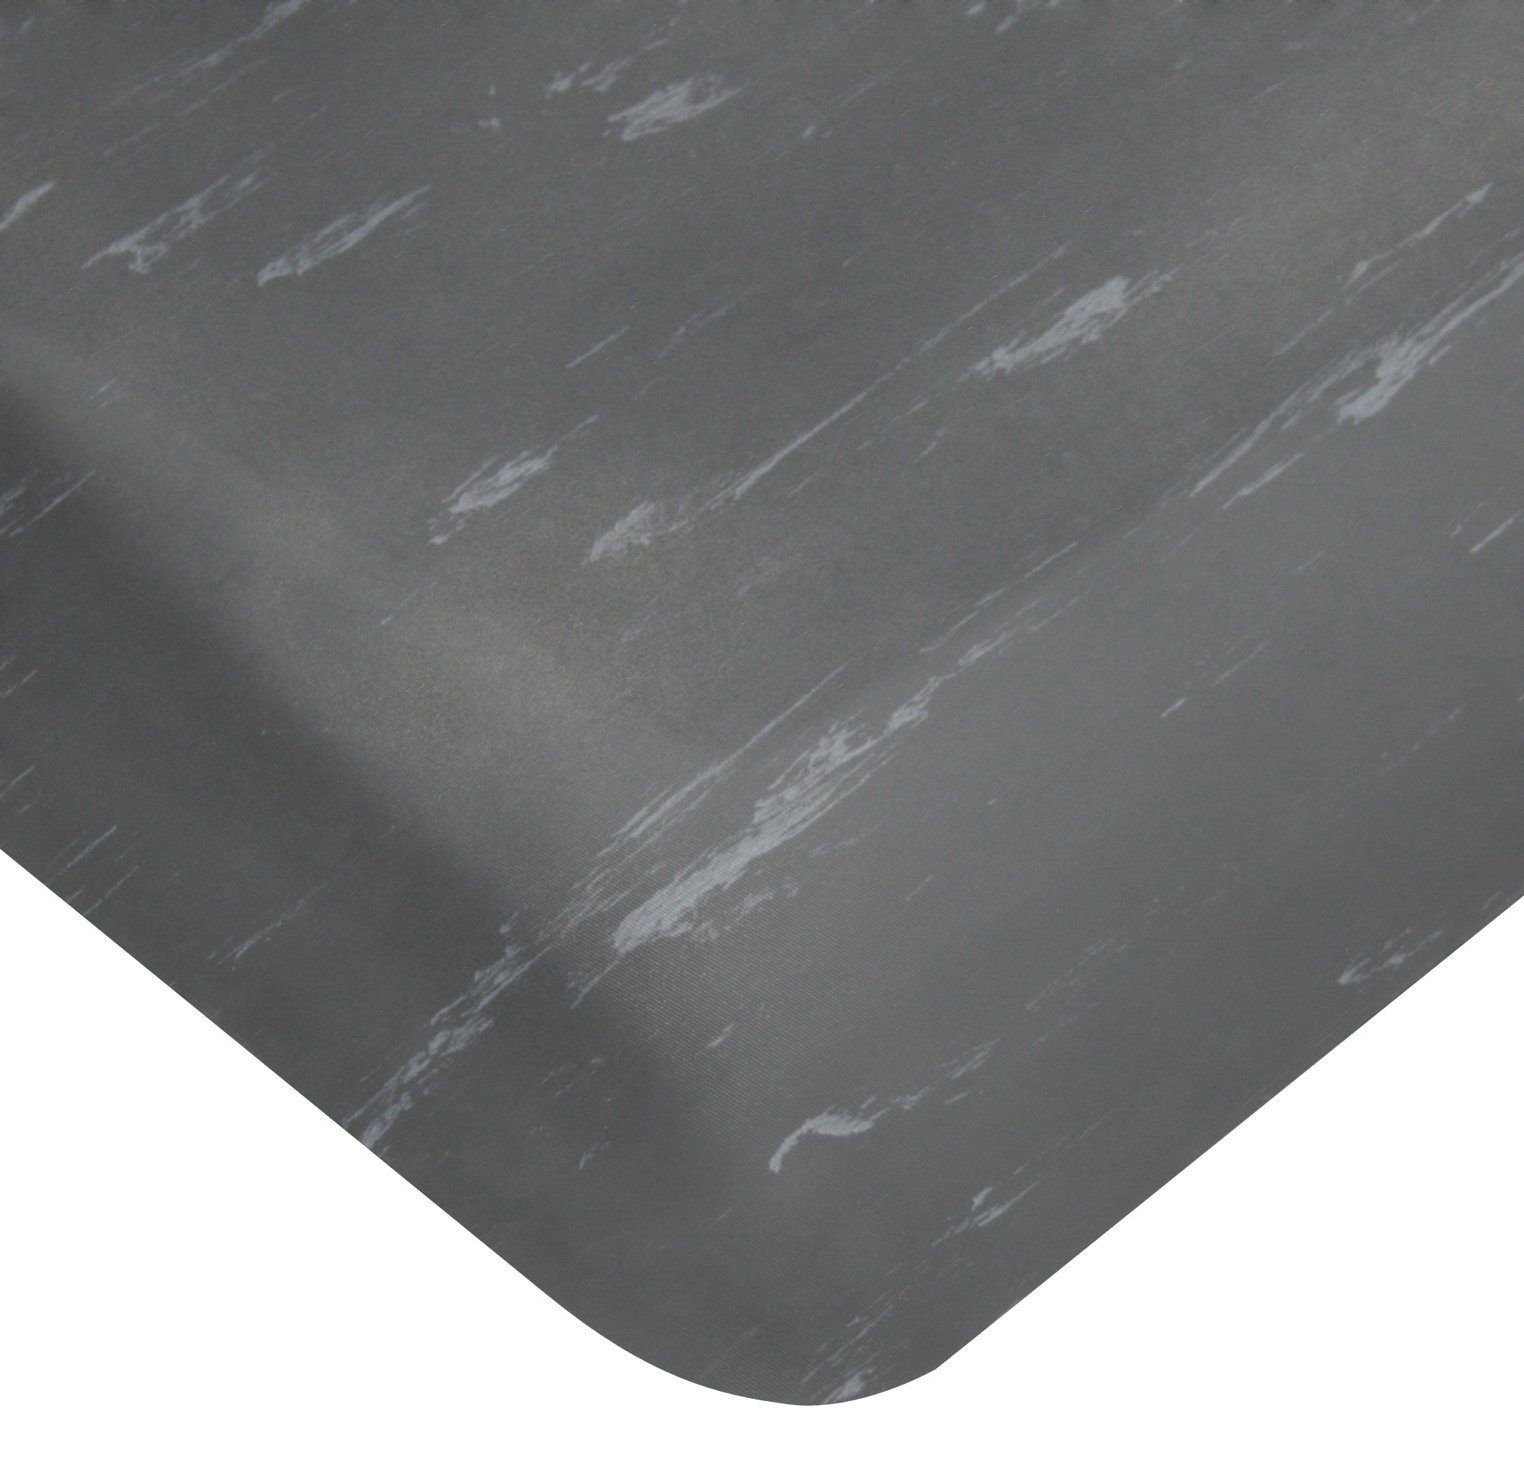 Wearwell PVC 419 UltraSoft Tile-Top Anti-Microbial Mat, Safety Beveled Edges, for Dry Areas, 2' Width x 3' Length x 7/8'' Thickness, Charcoal